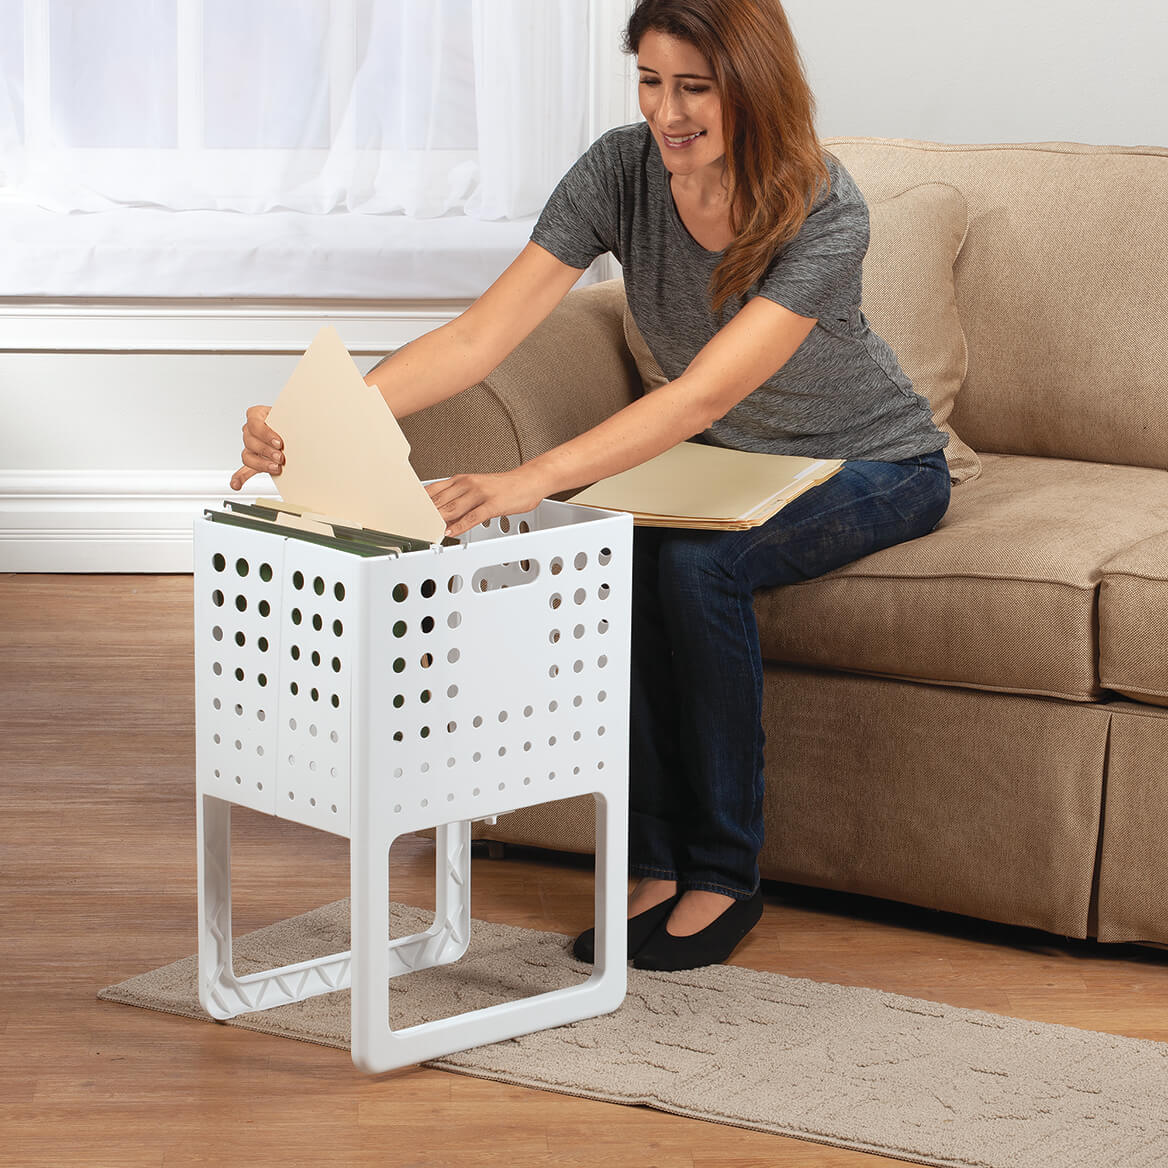 Collapsible Storage Crate-371185